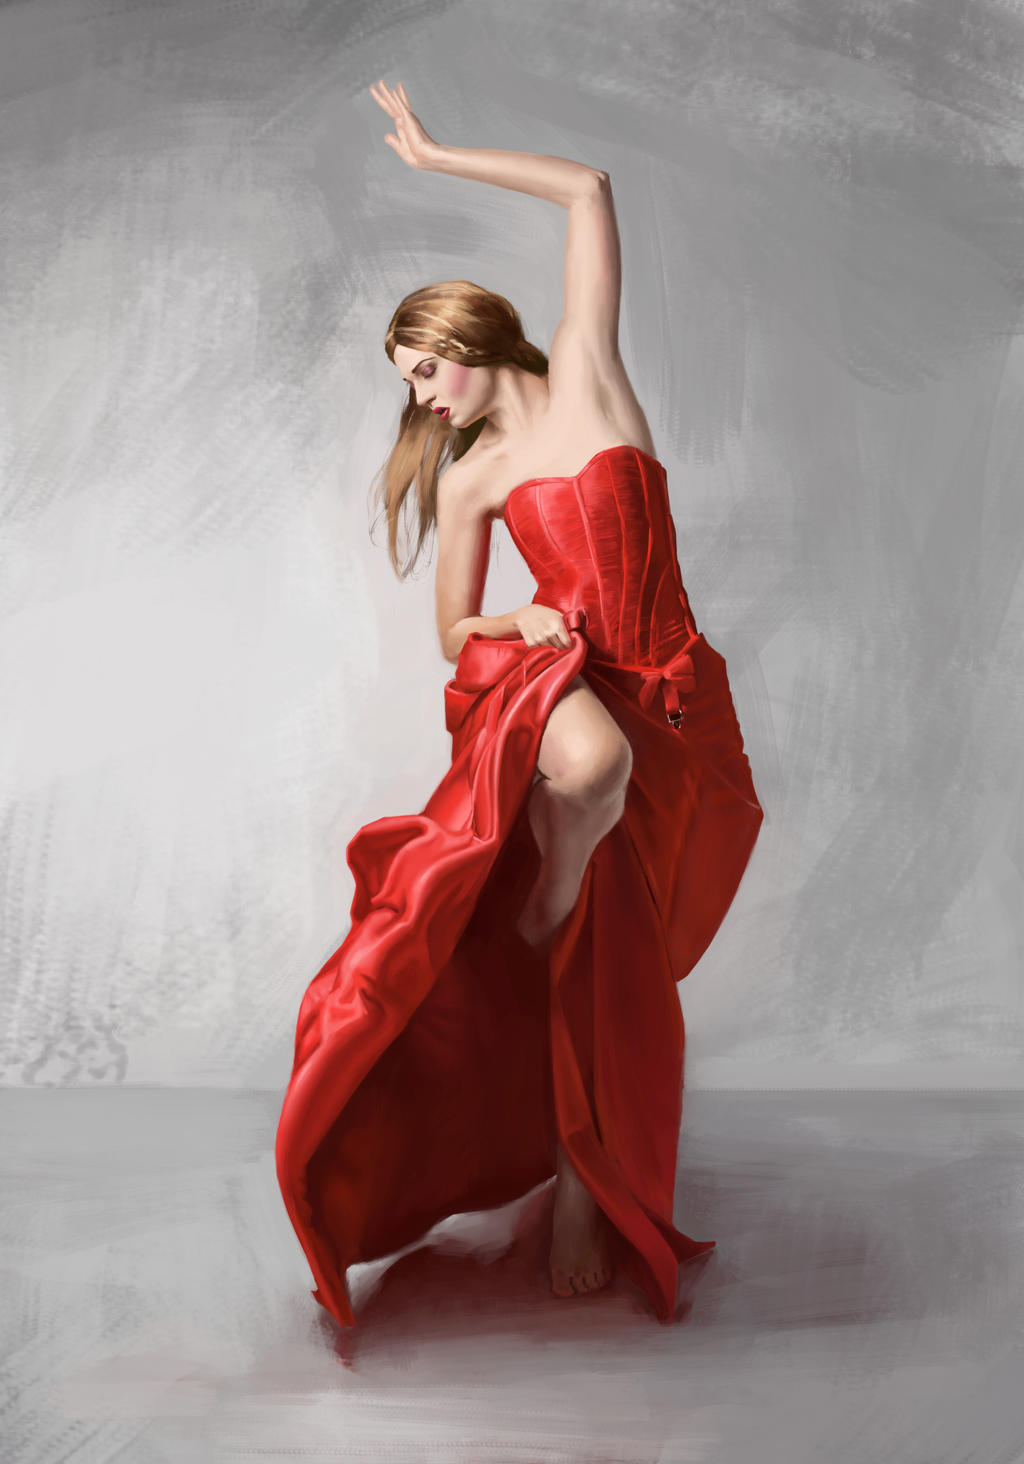 Dancing Woman in Red